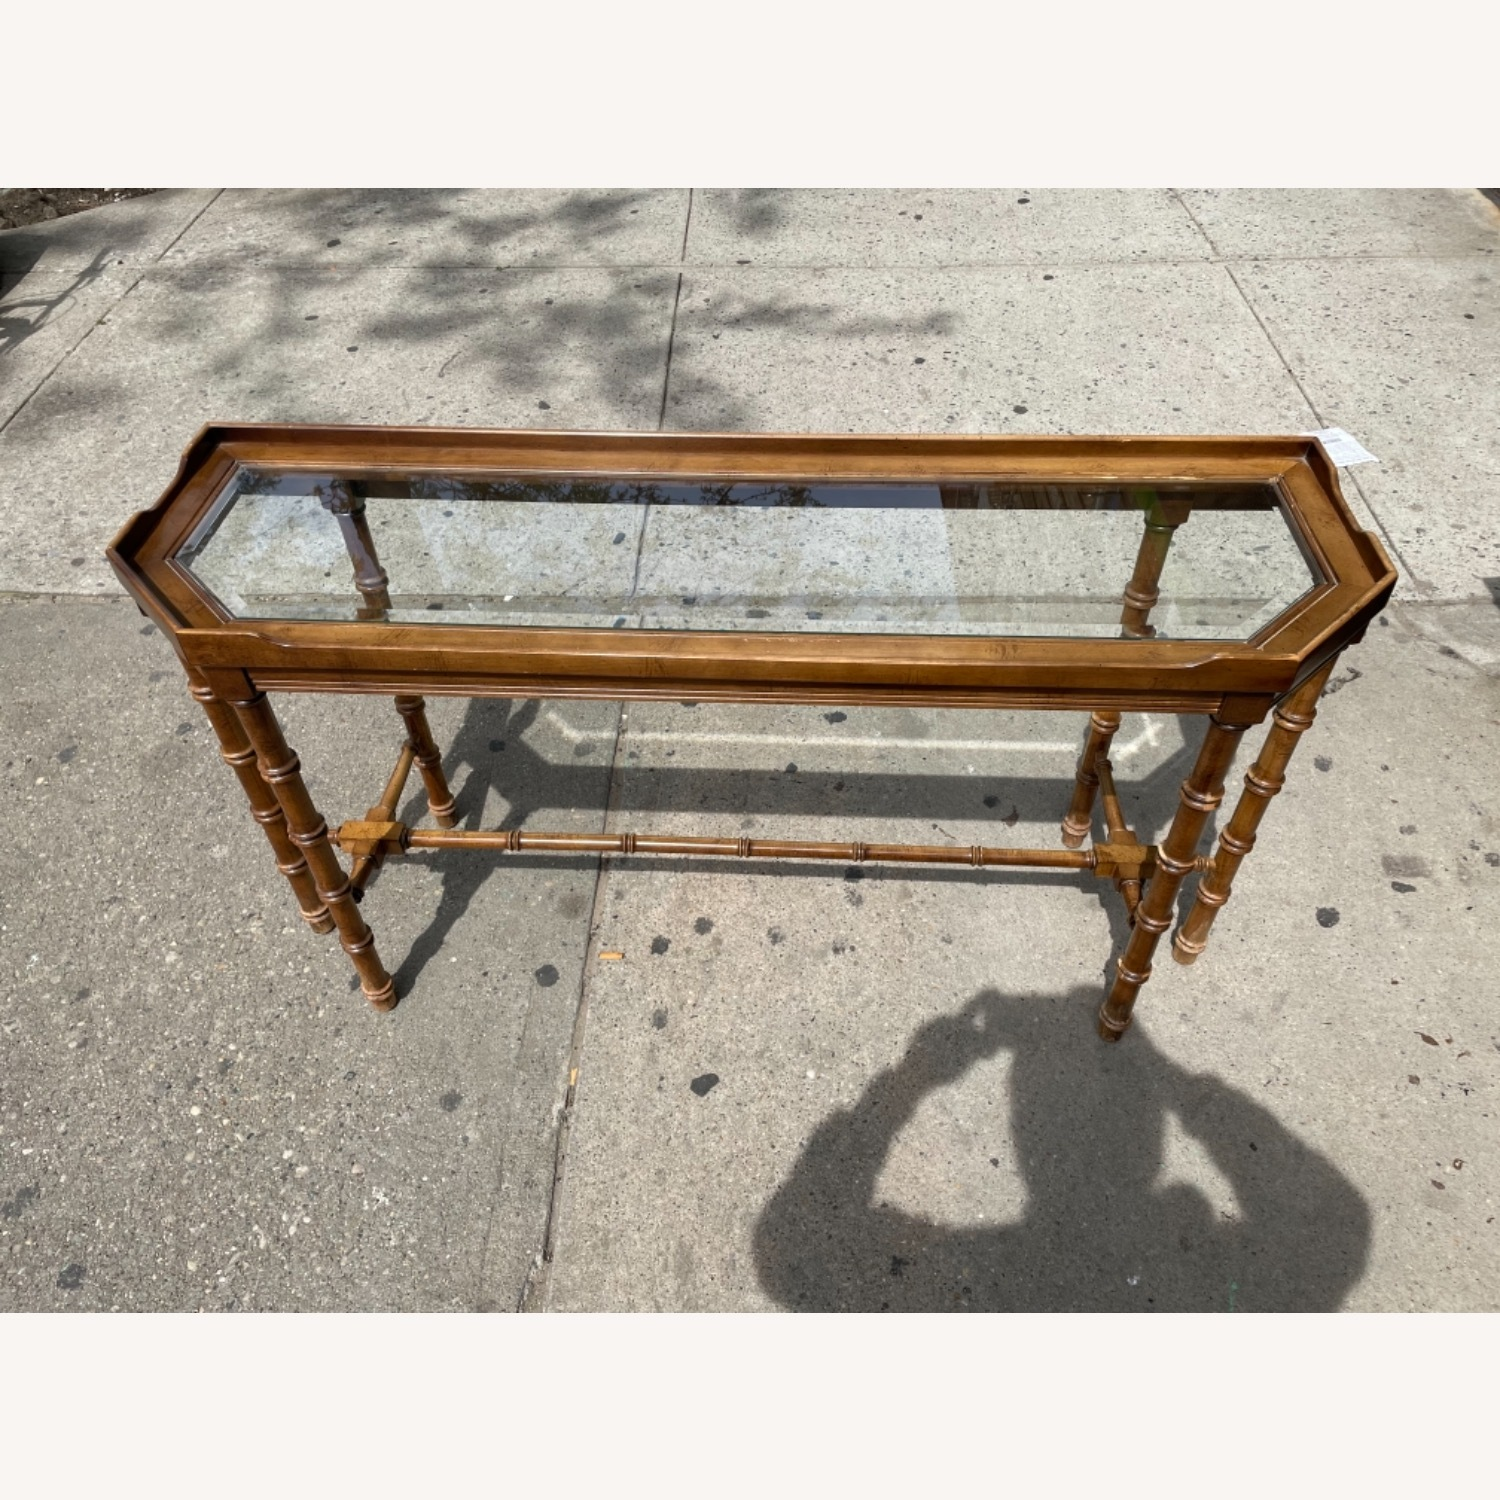 Lane 1970s Console Table w/ Beveled Glass Top - image-21